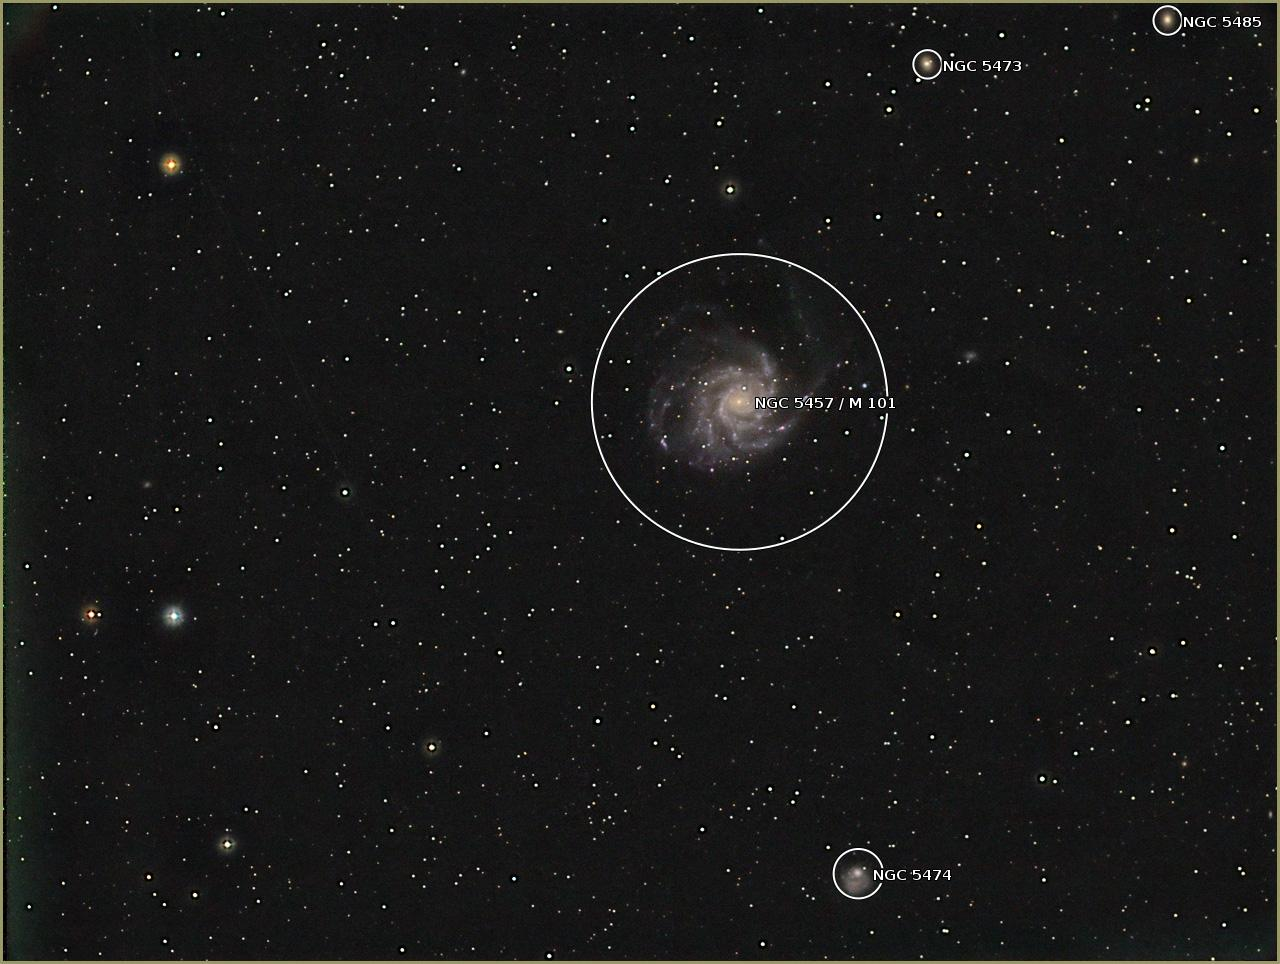 Plate solving images on the Raspberry Pi | Farnham Astronomical Society